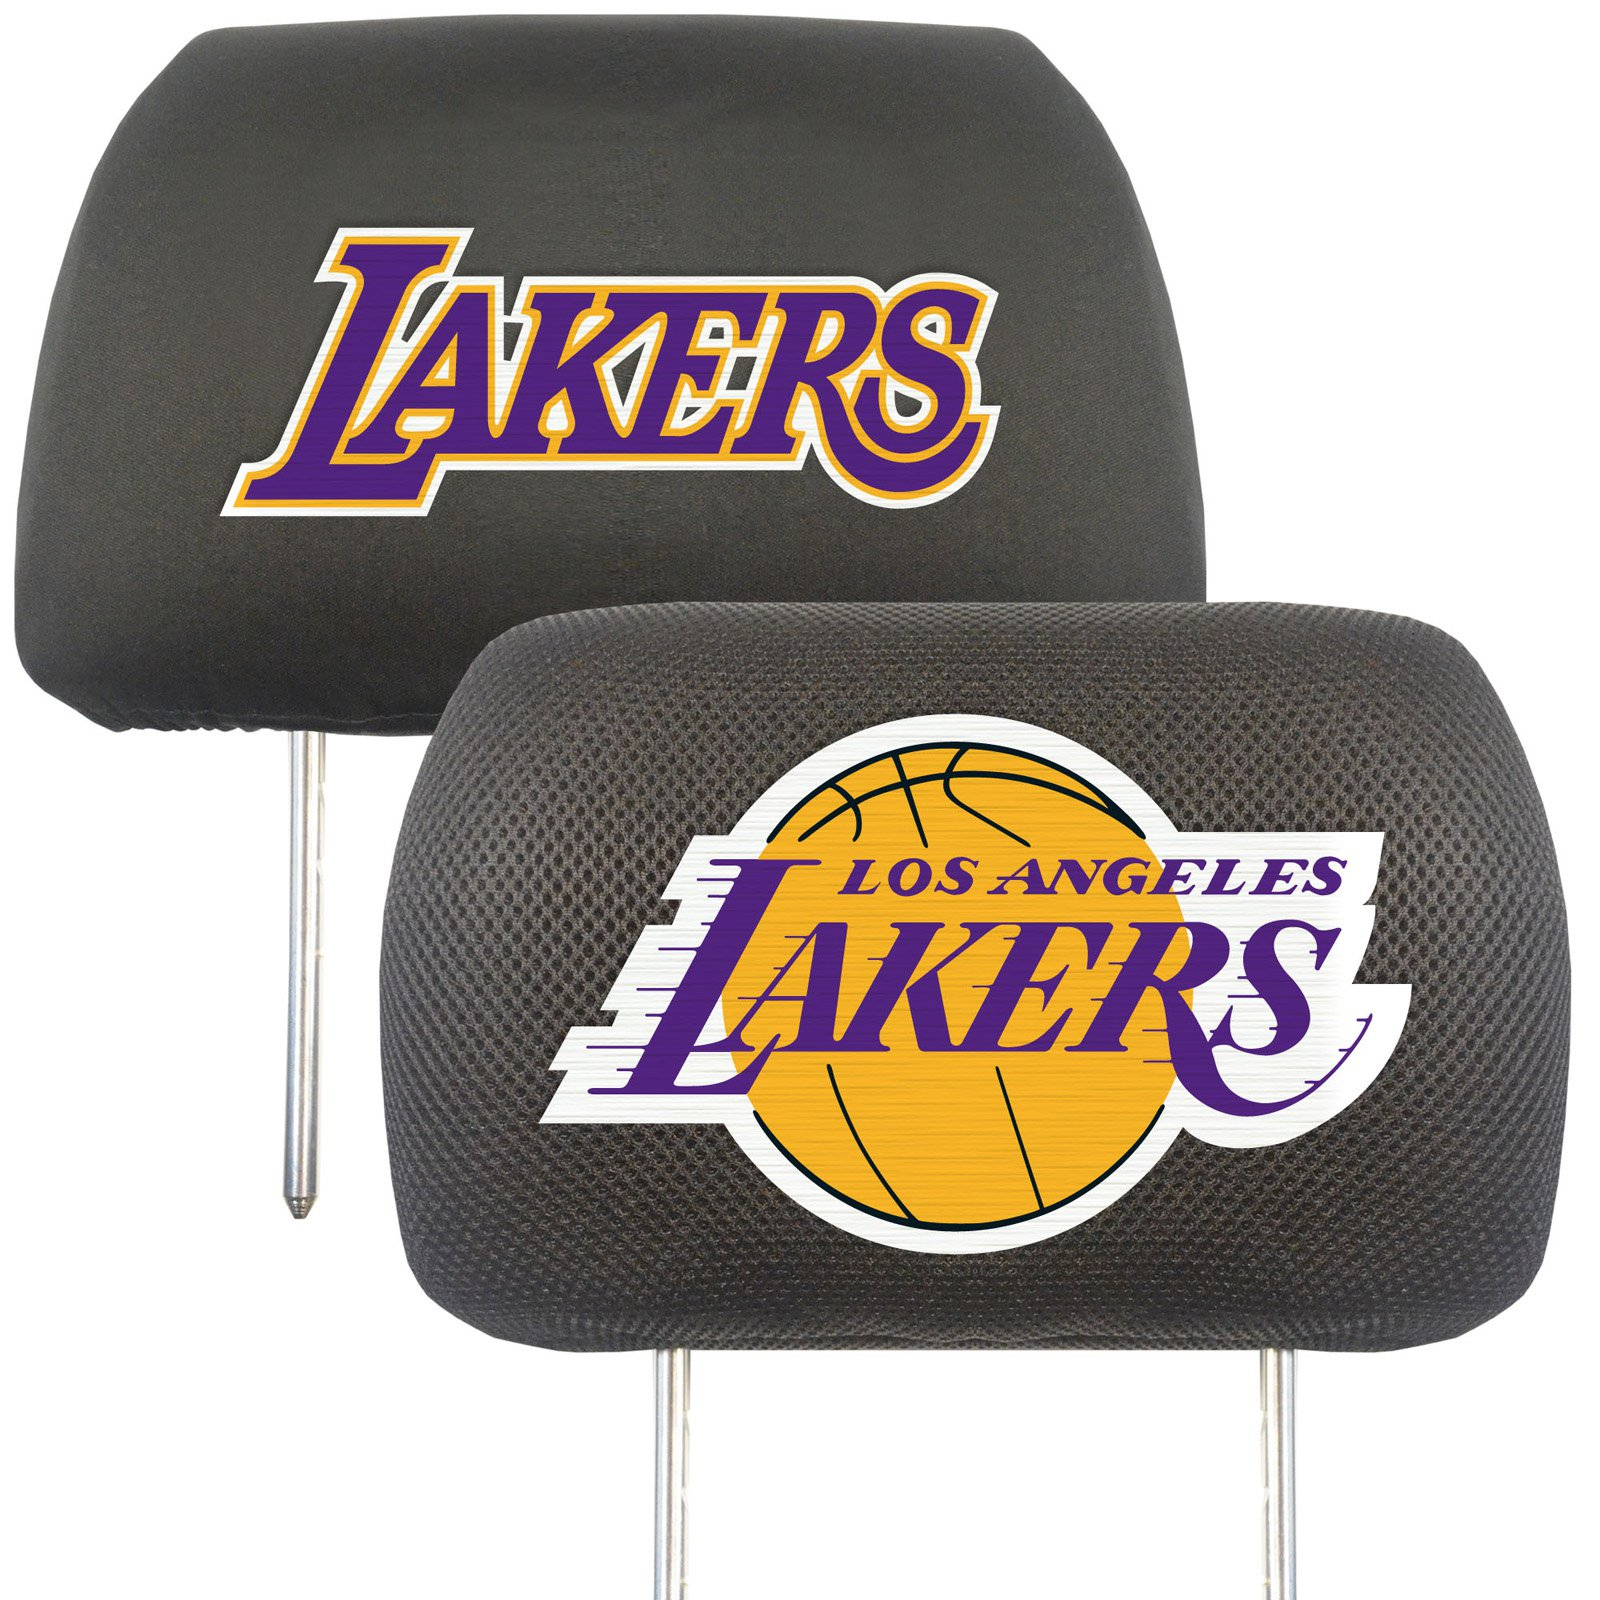 NBA Los Angeles Lakers Headrest Covers